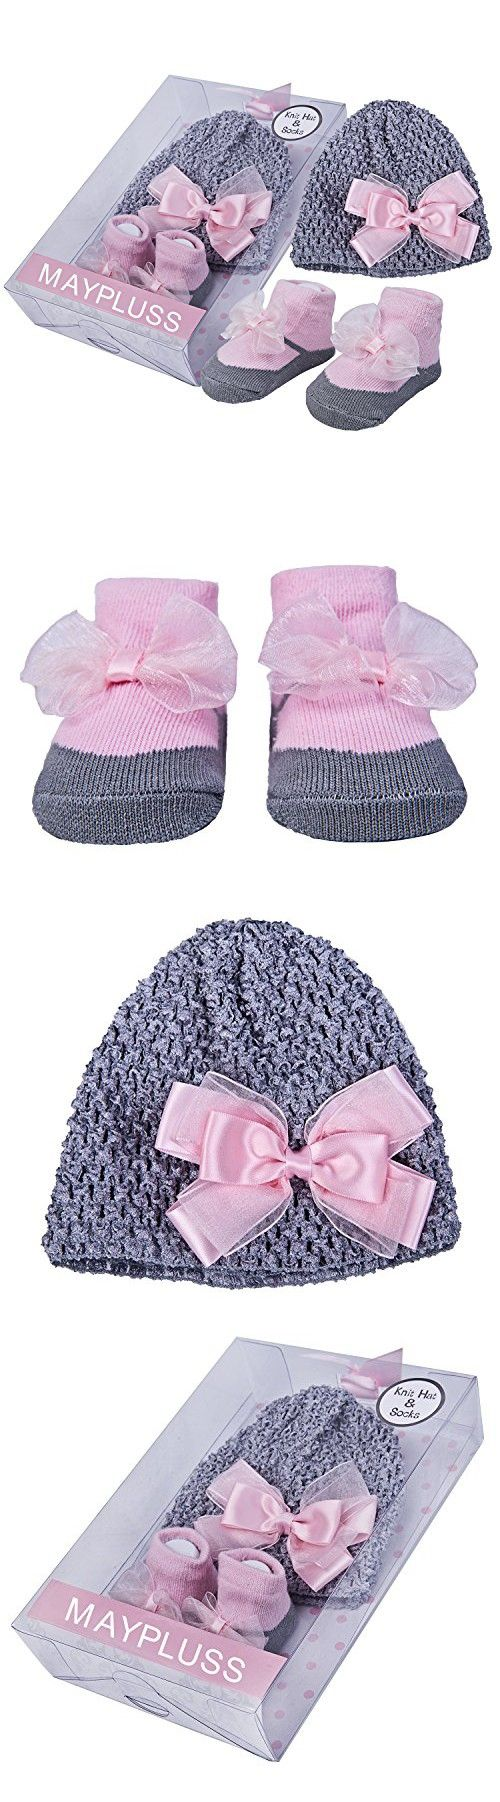 ac20bac9c85 Maypluss Grey Pink Knit Hat and Socks